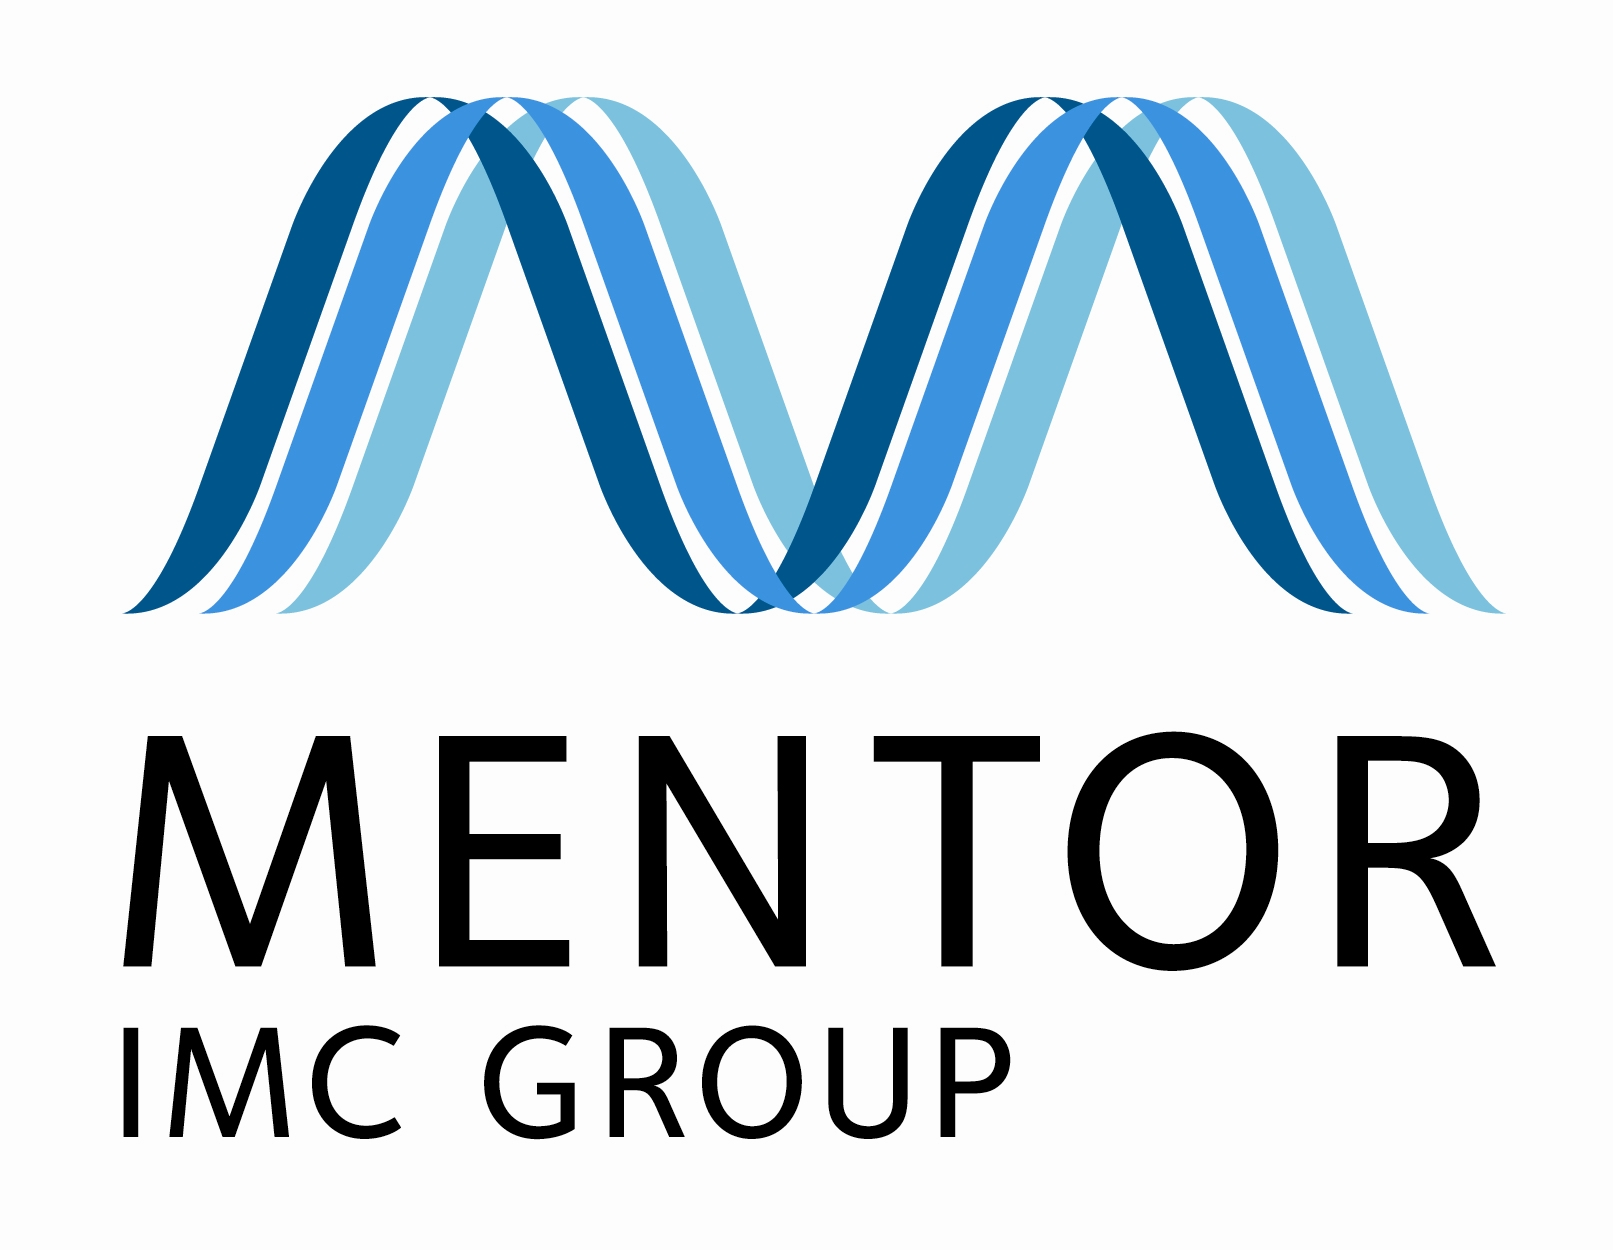 Jobs In Oil And Gas Renewables Nuclear Power Infrastructure Piping Layout Engineer Singapore Mentor Imc Group